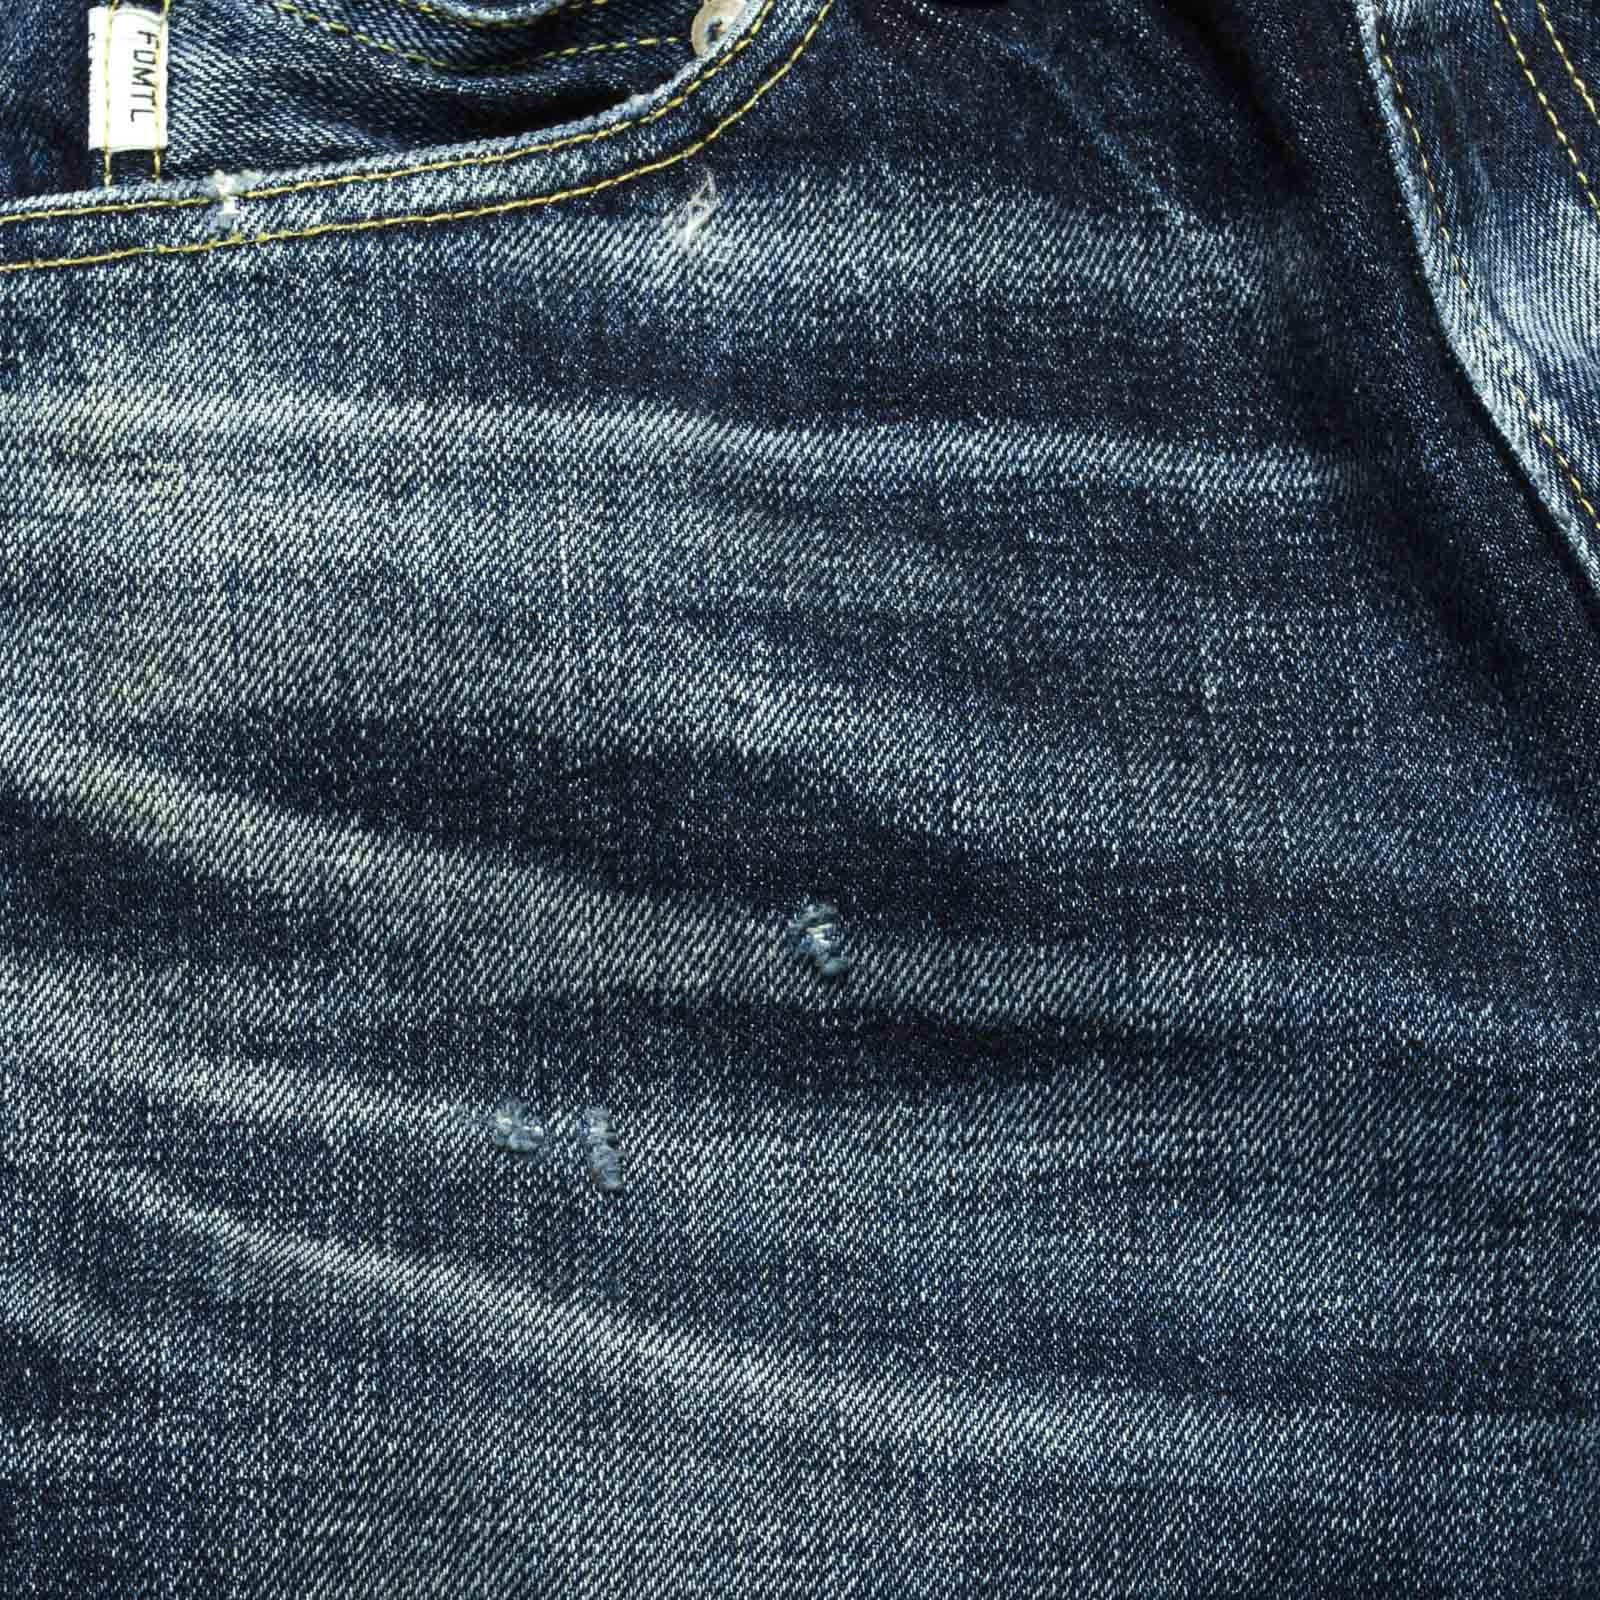 Trace Denim Case Study 7